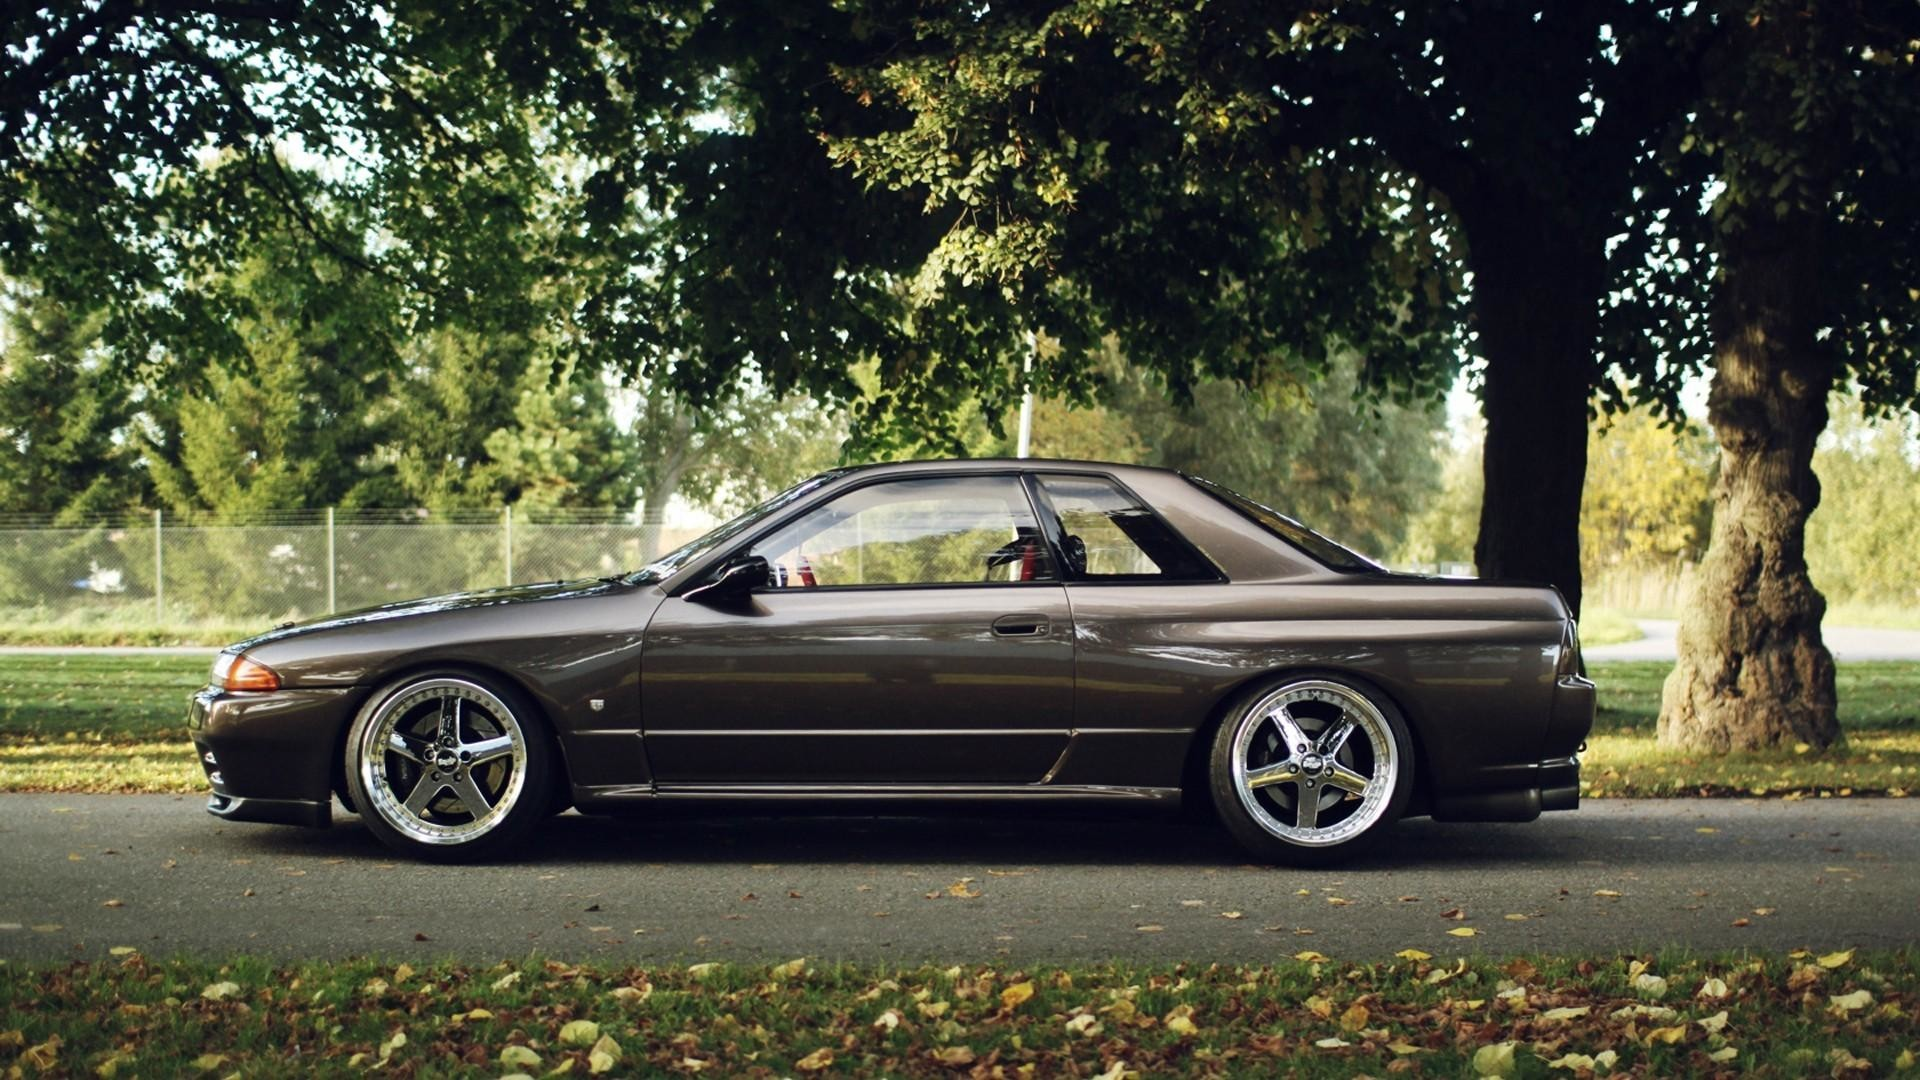 Cars nissan skyline r32 gt-r jdm wallpaper | (59303)